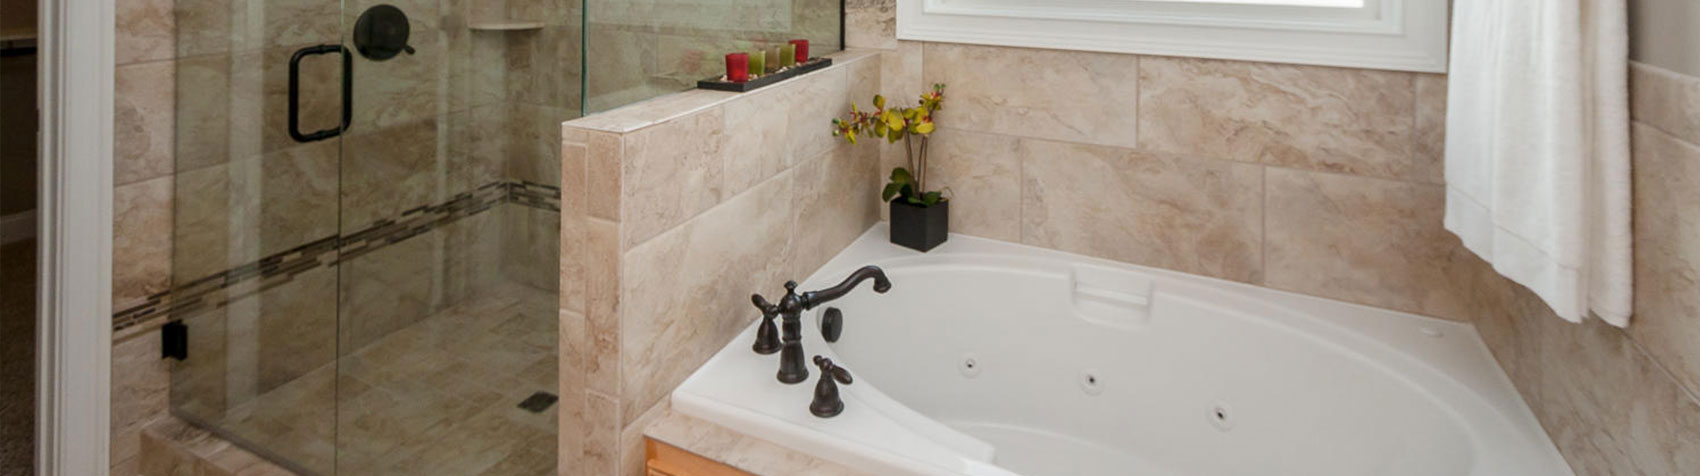 Stallings Ridge Shower and Tub | Stallings Ridge